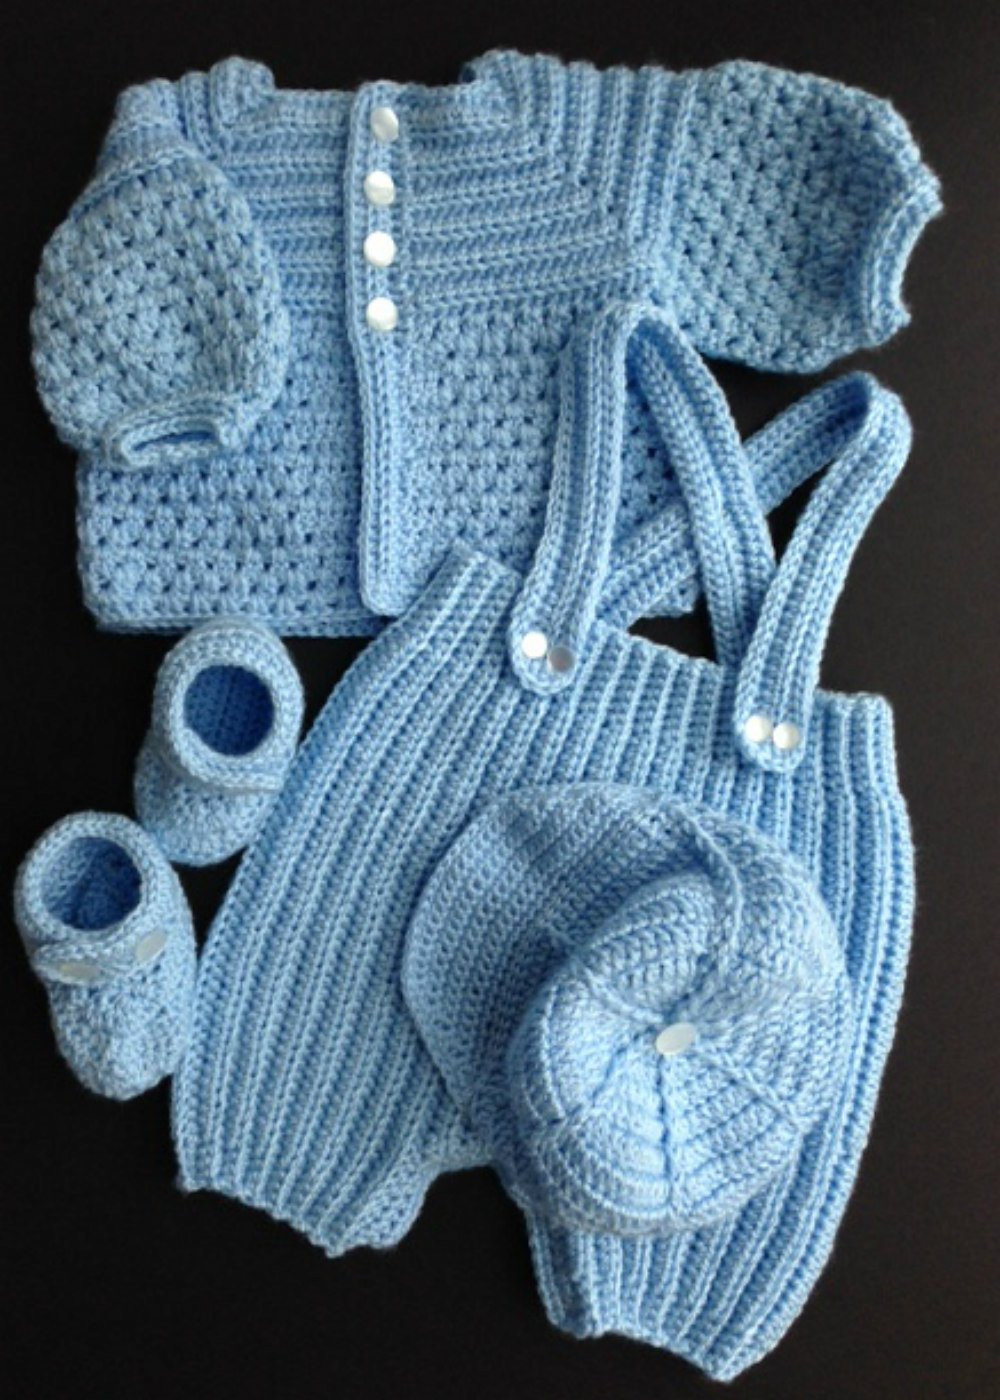 Crochet Baby Outfits Lovely Baby Boy Crocheted Outfit Of Marvelous 44 Photos Crochet Baby Outfits